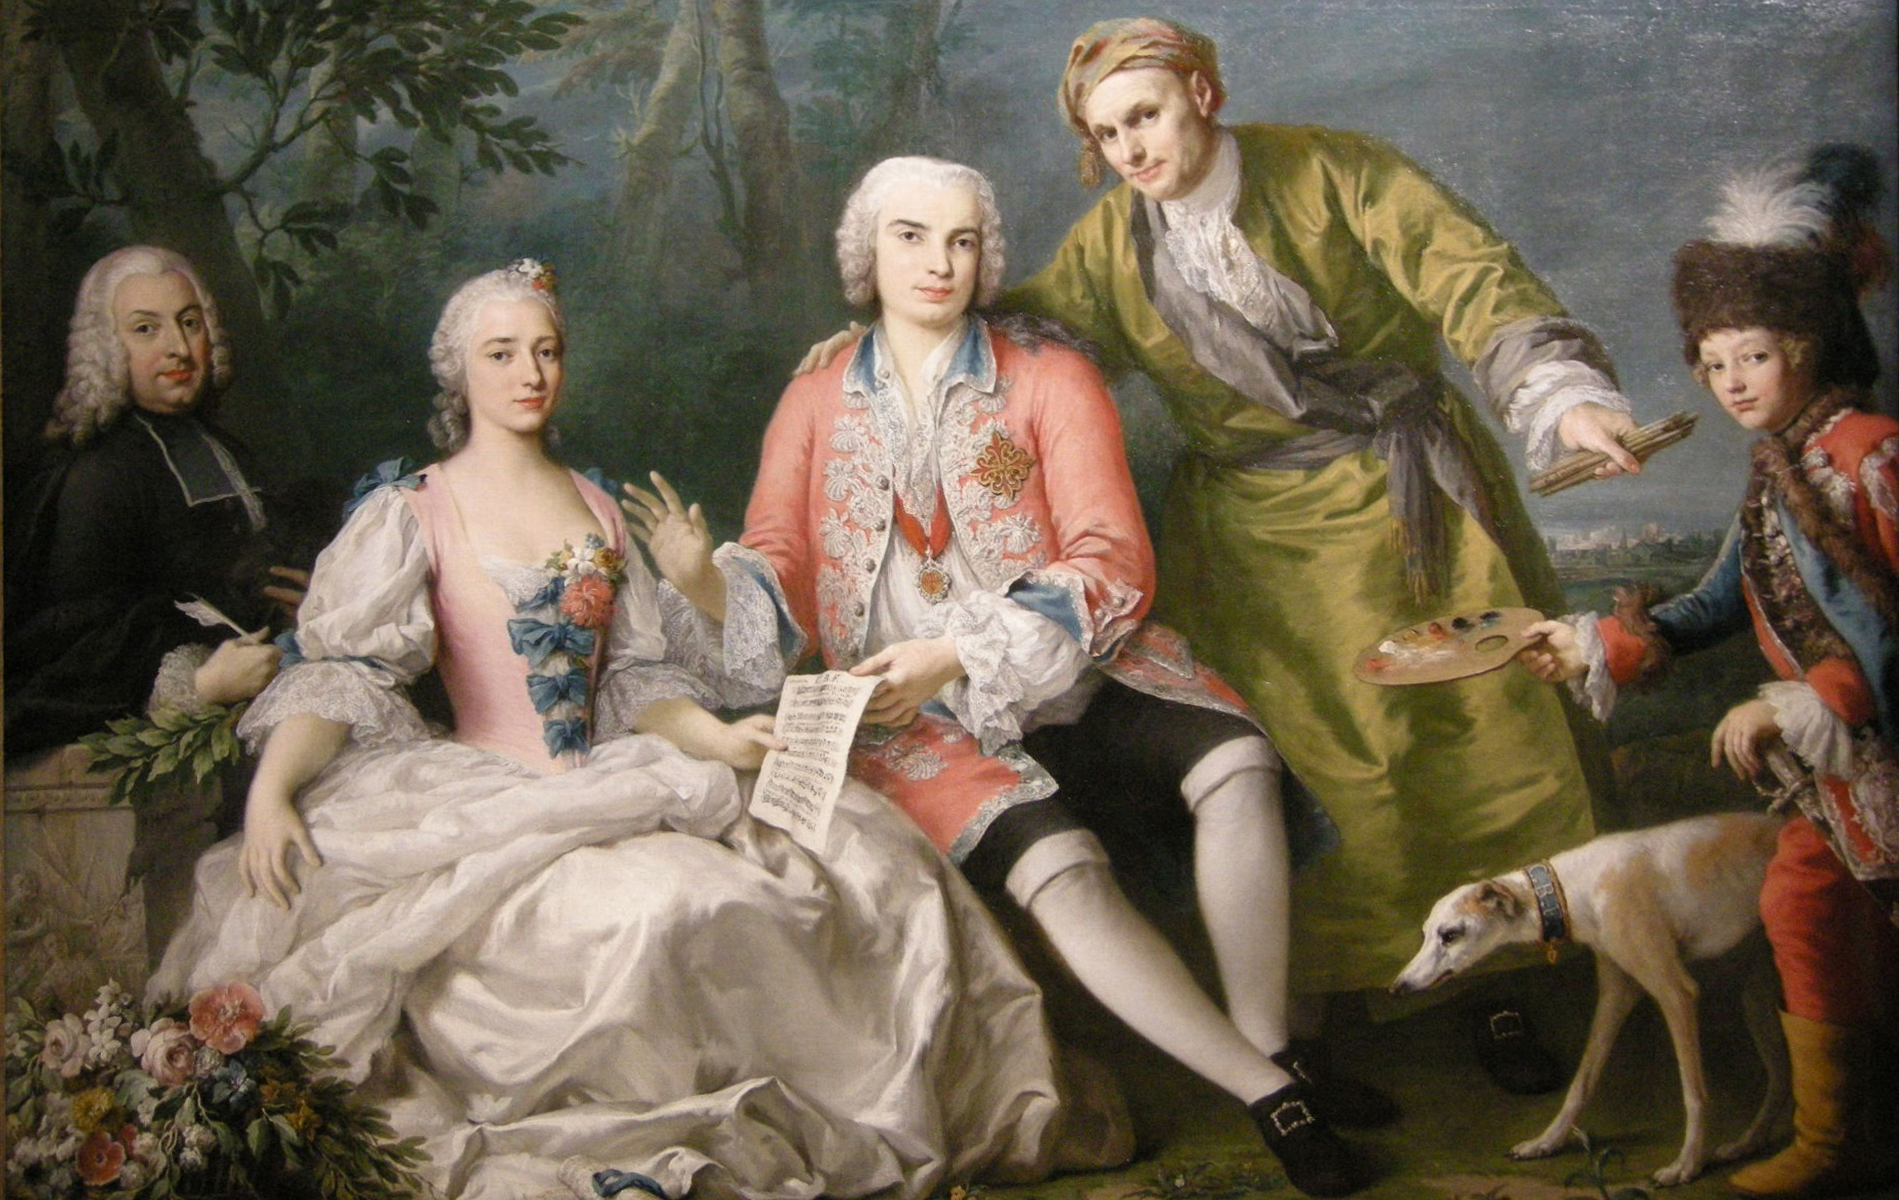 18th century style painting of a group of white men